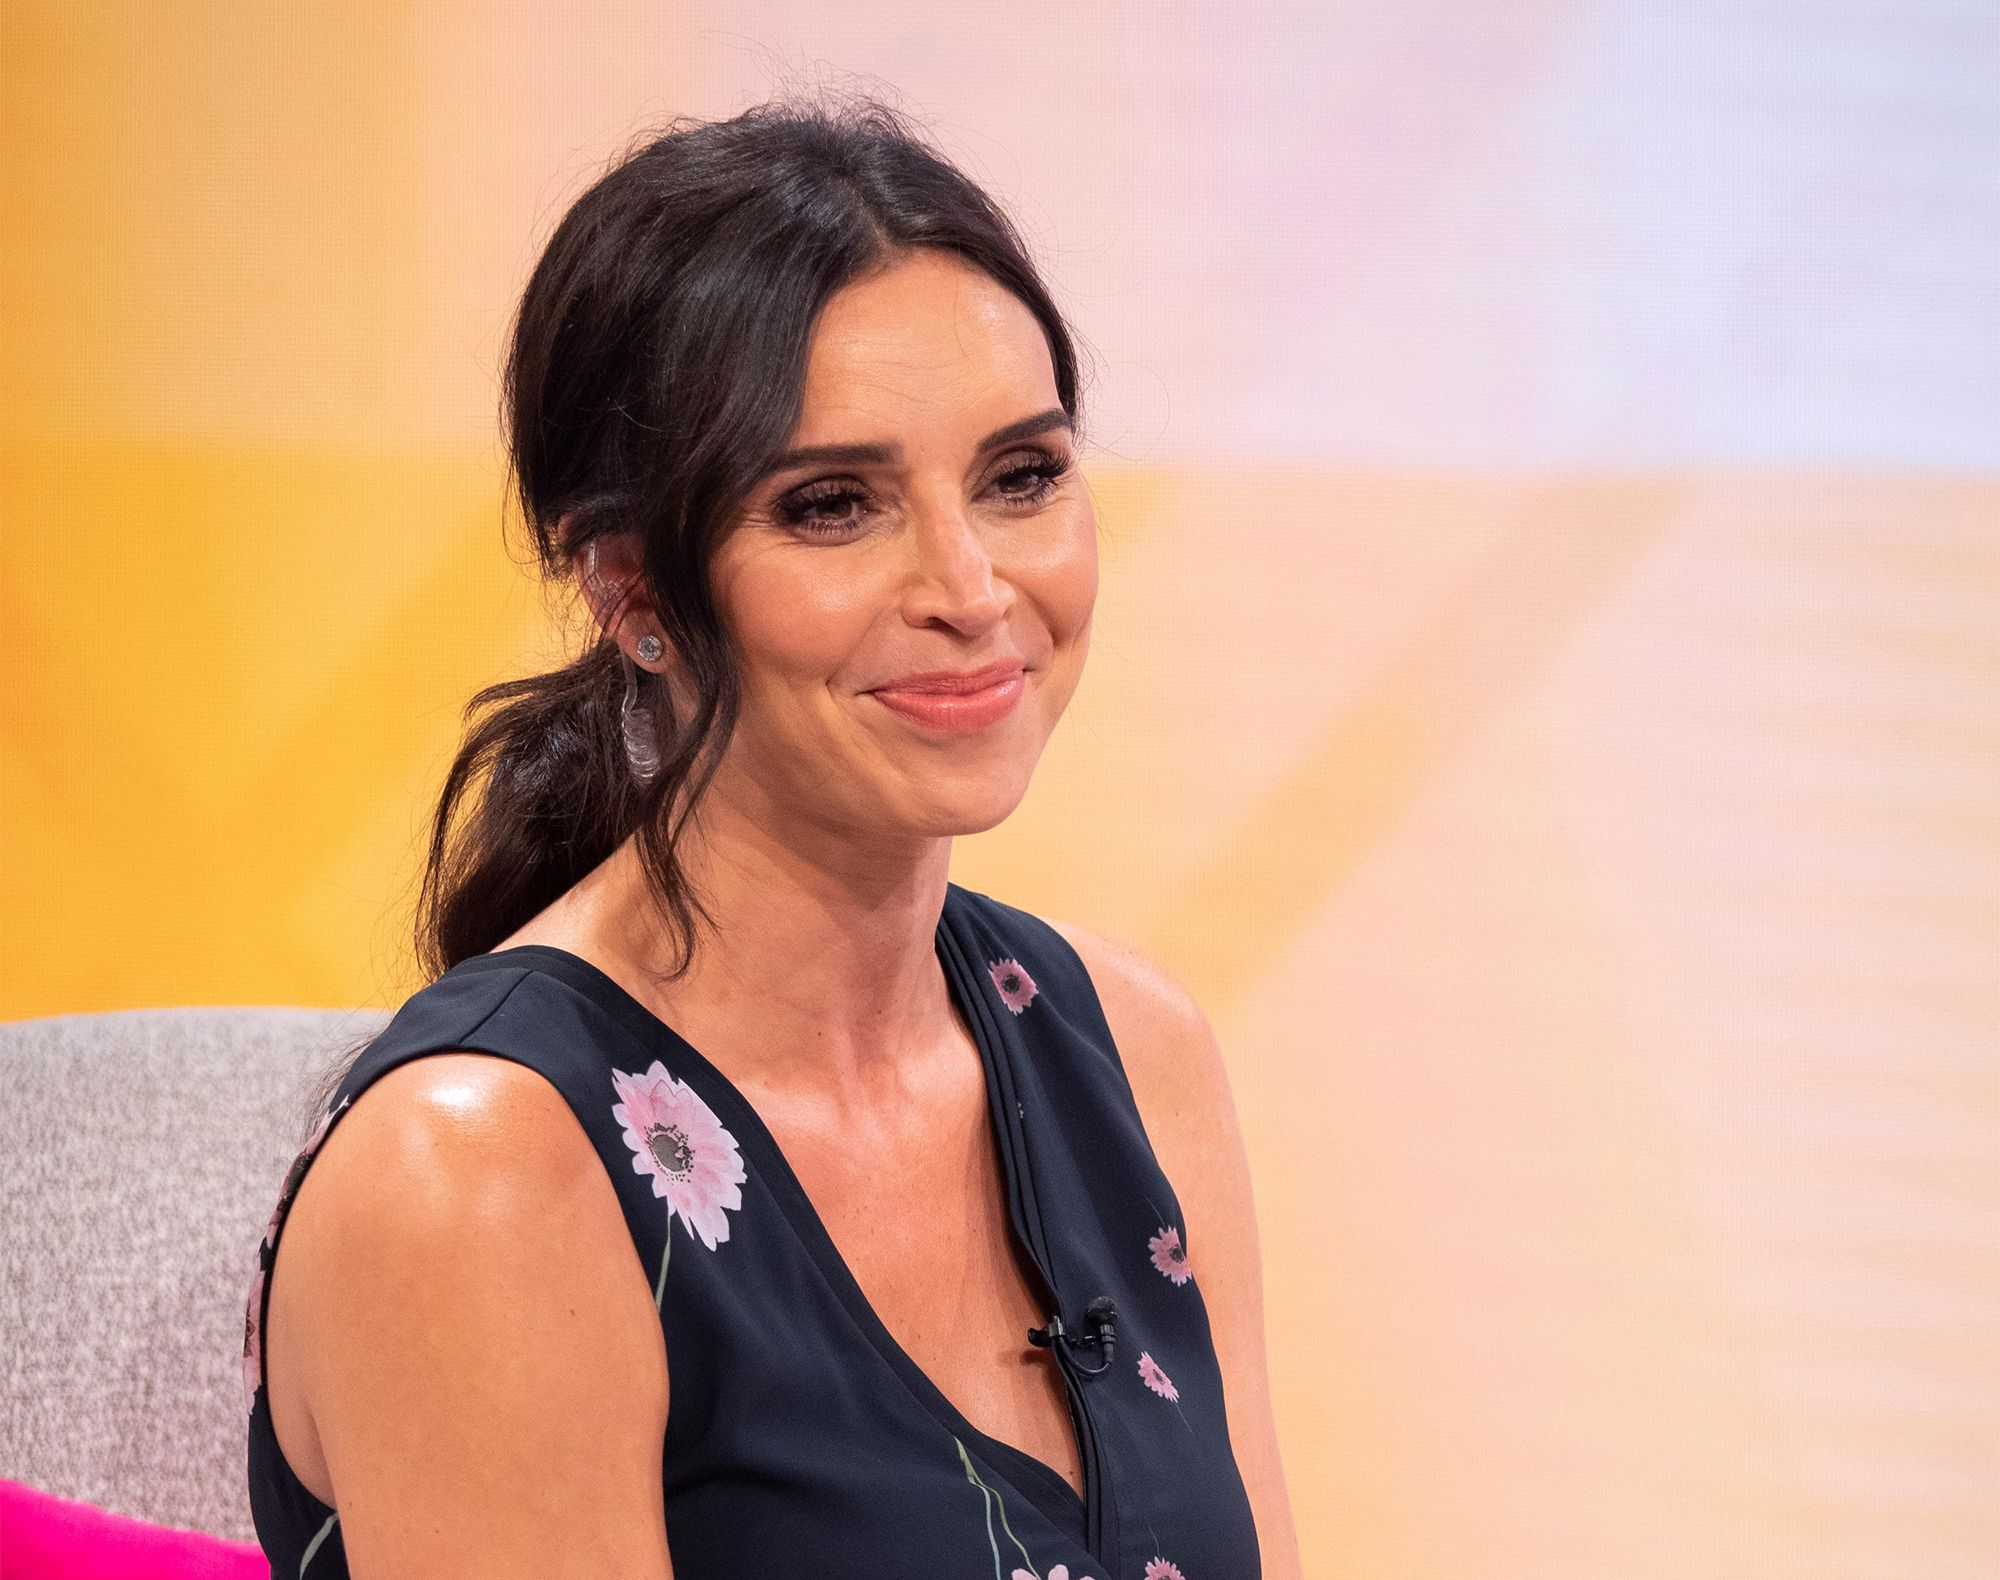 Christine Lampard wears the perfect blue floral dress